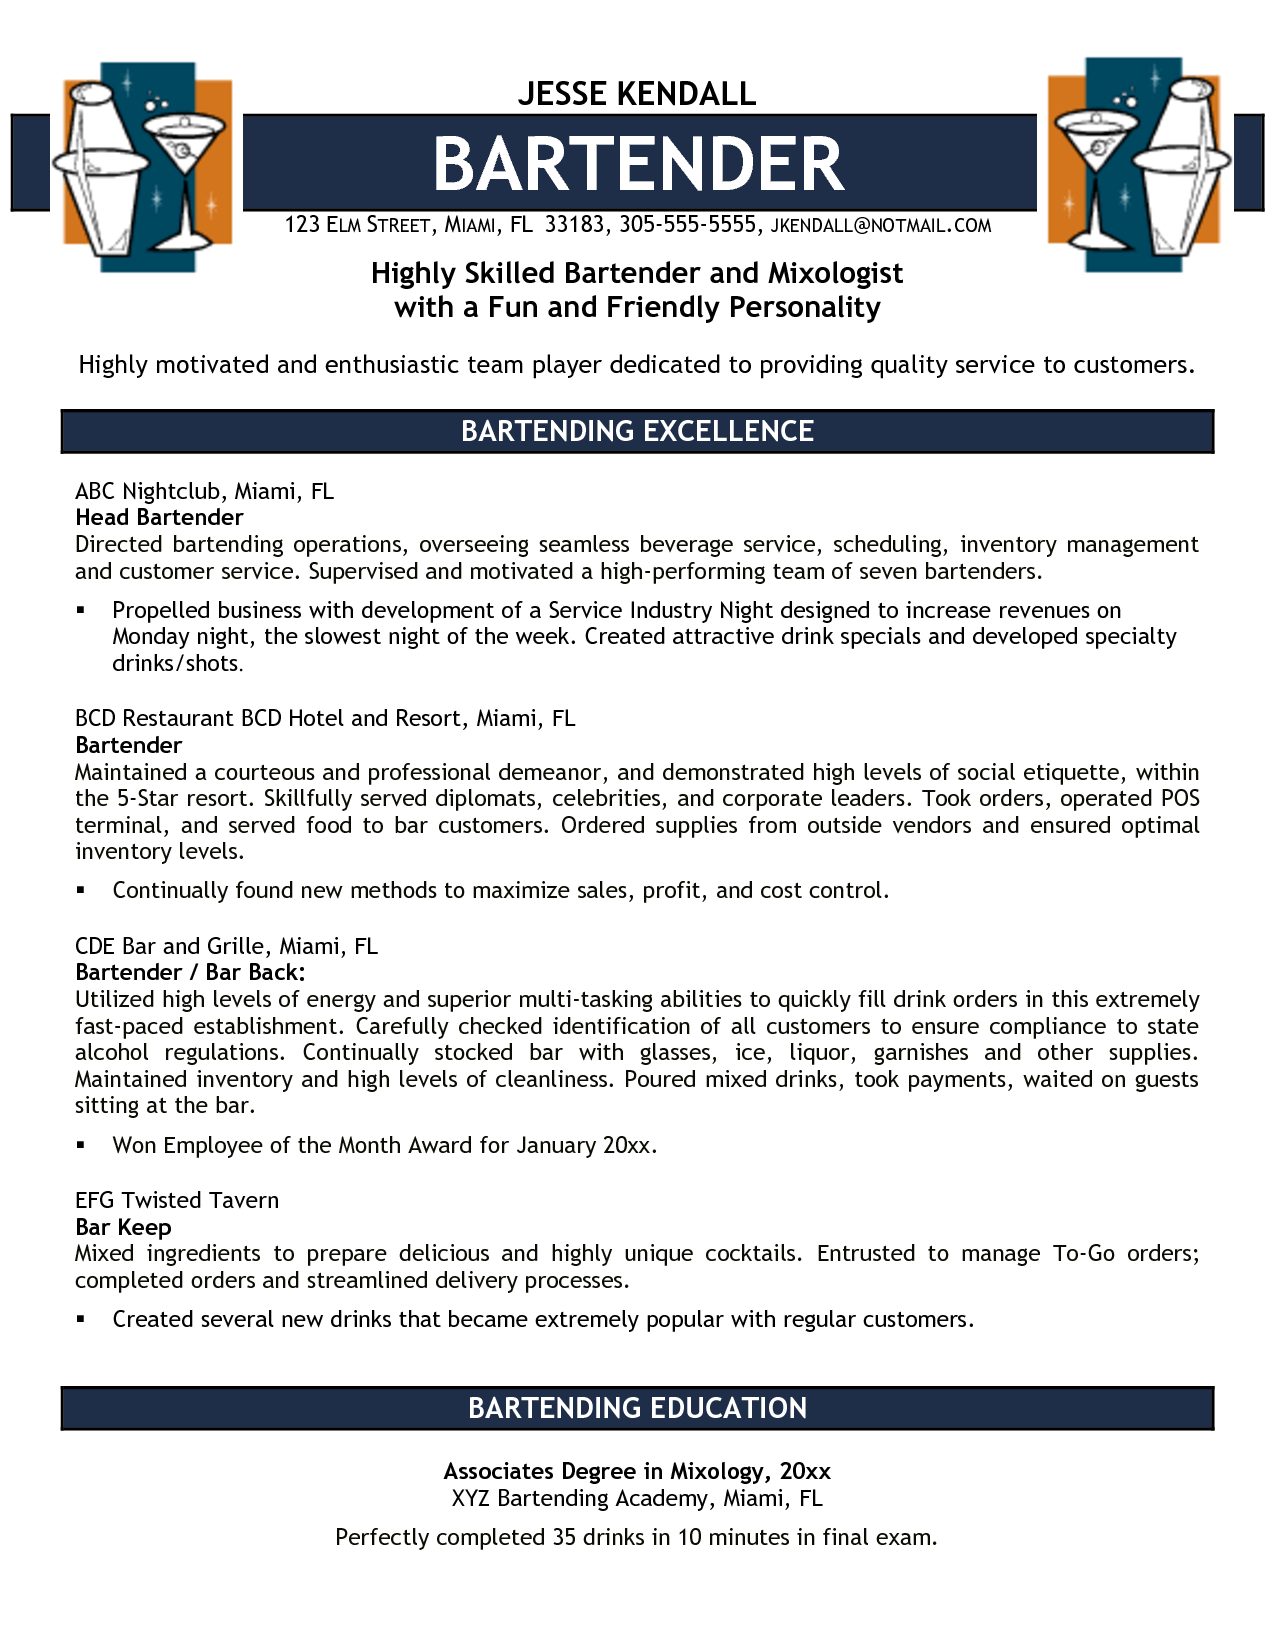 Bartender Duties On Resume 16 Free Bartender Resume Templates Samplebusinessresume